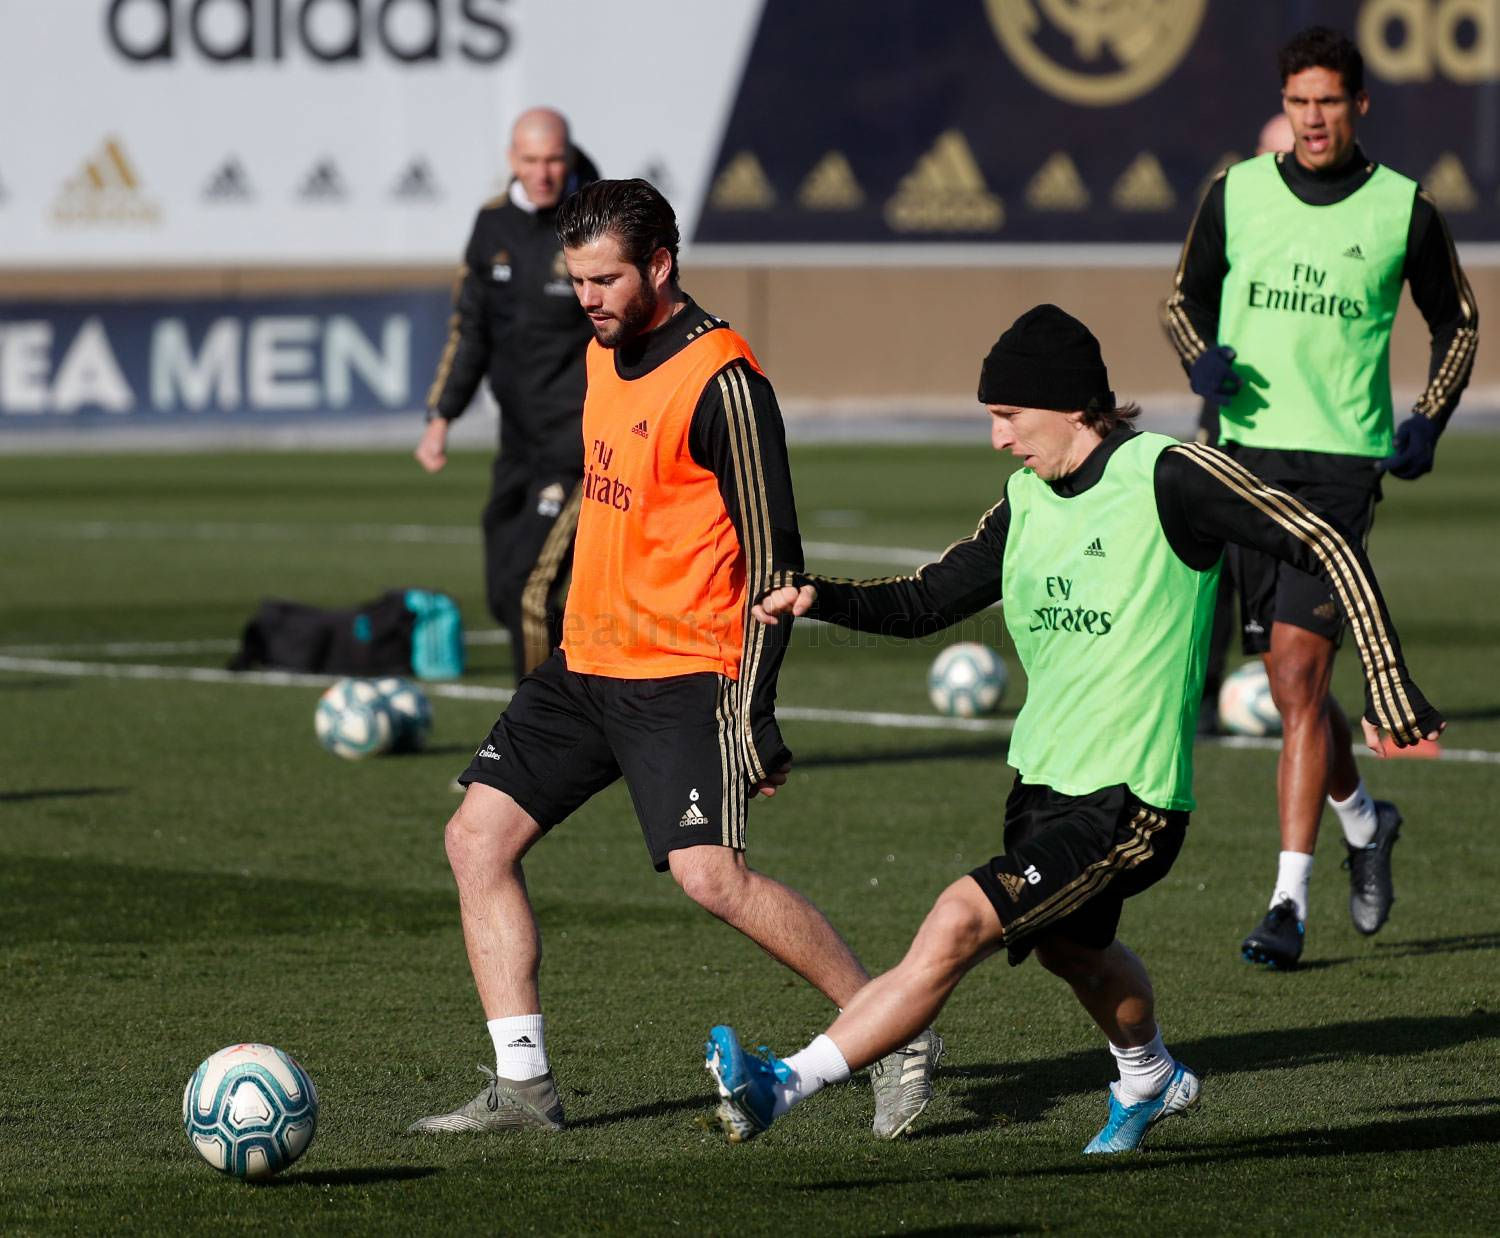 Real Madrid - Entrenamiento del Real Madrid  - 05-12-2019